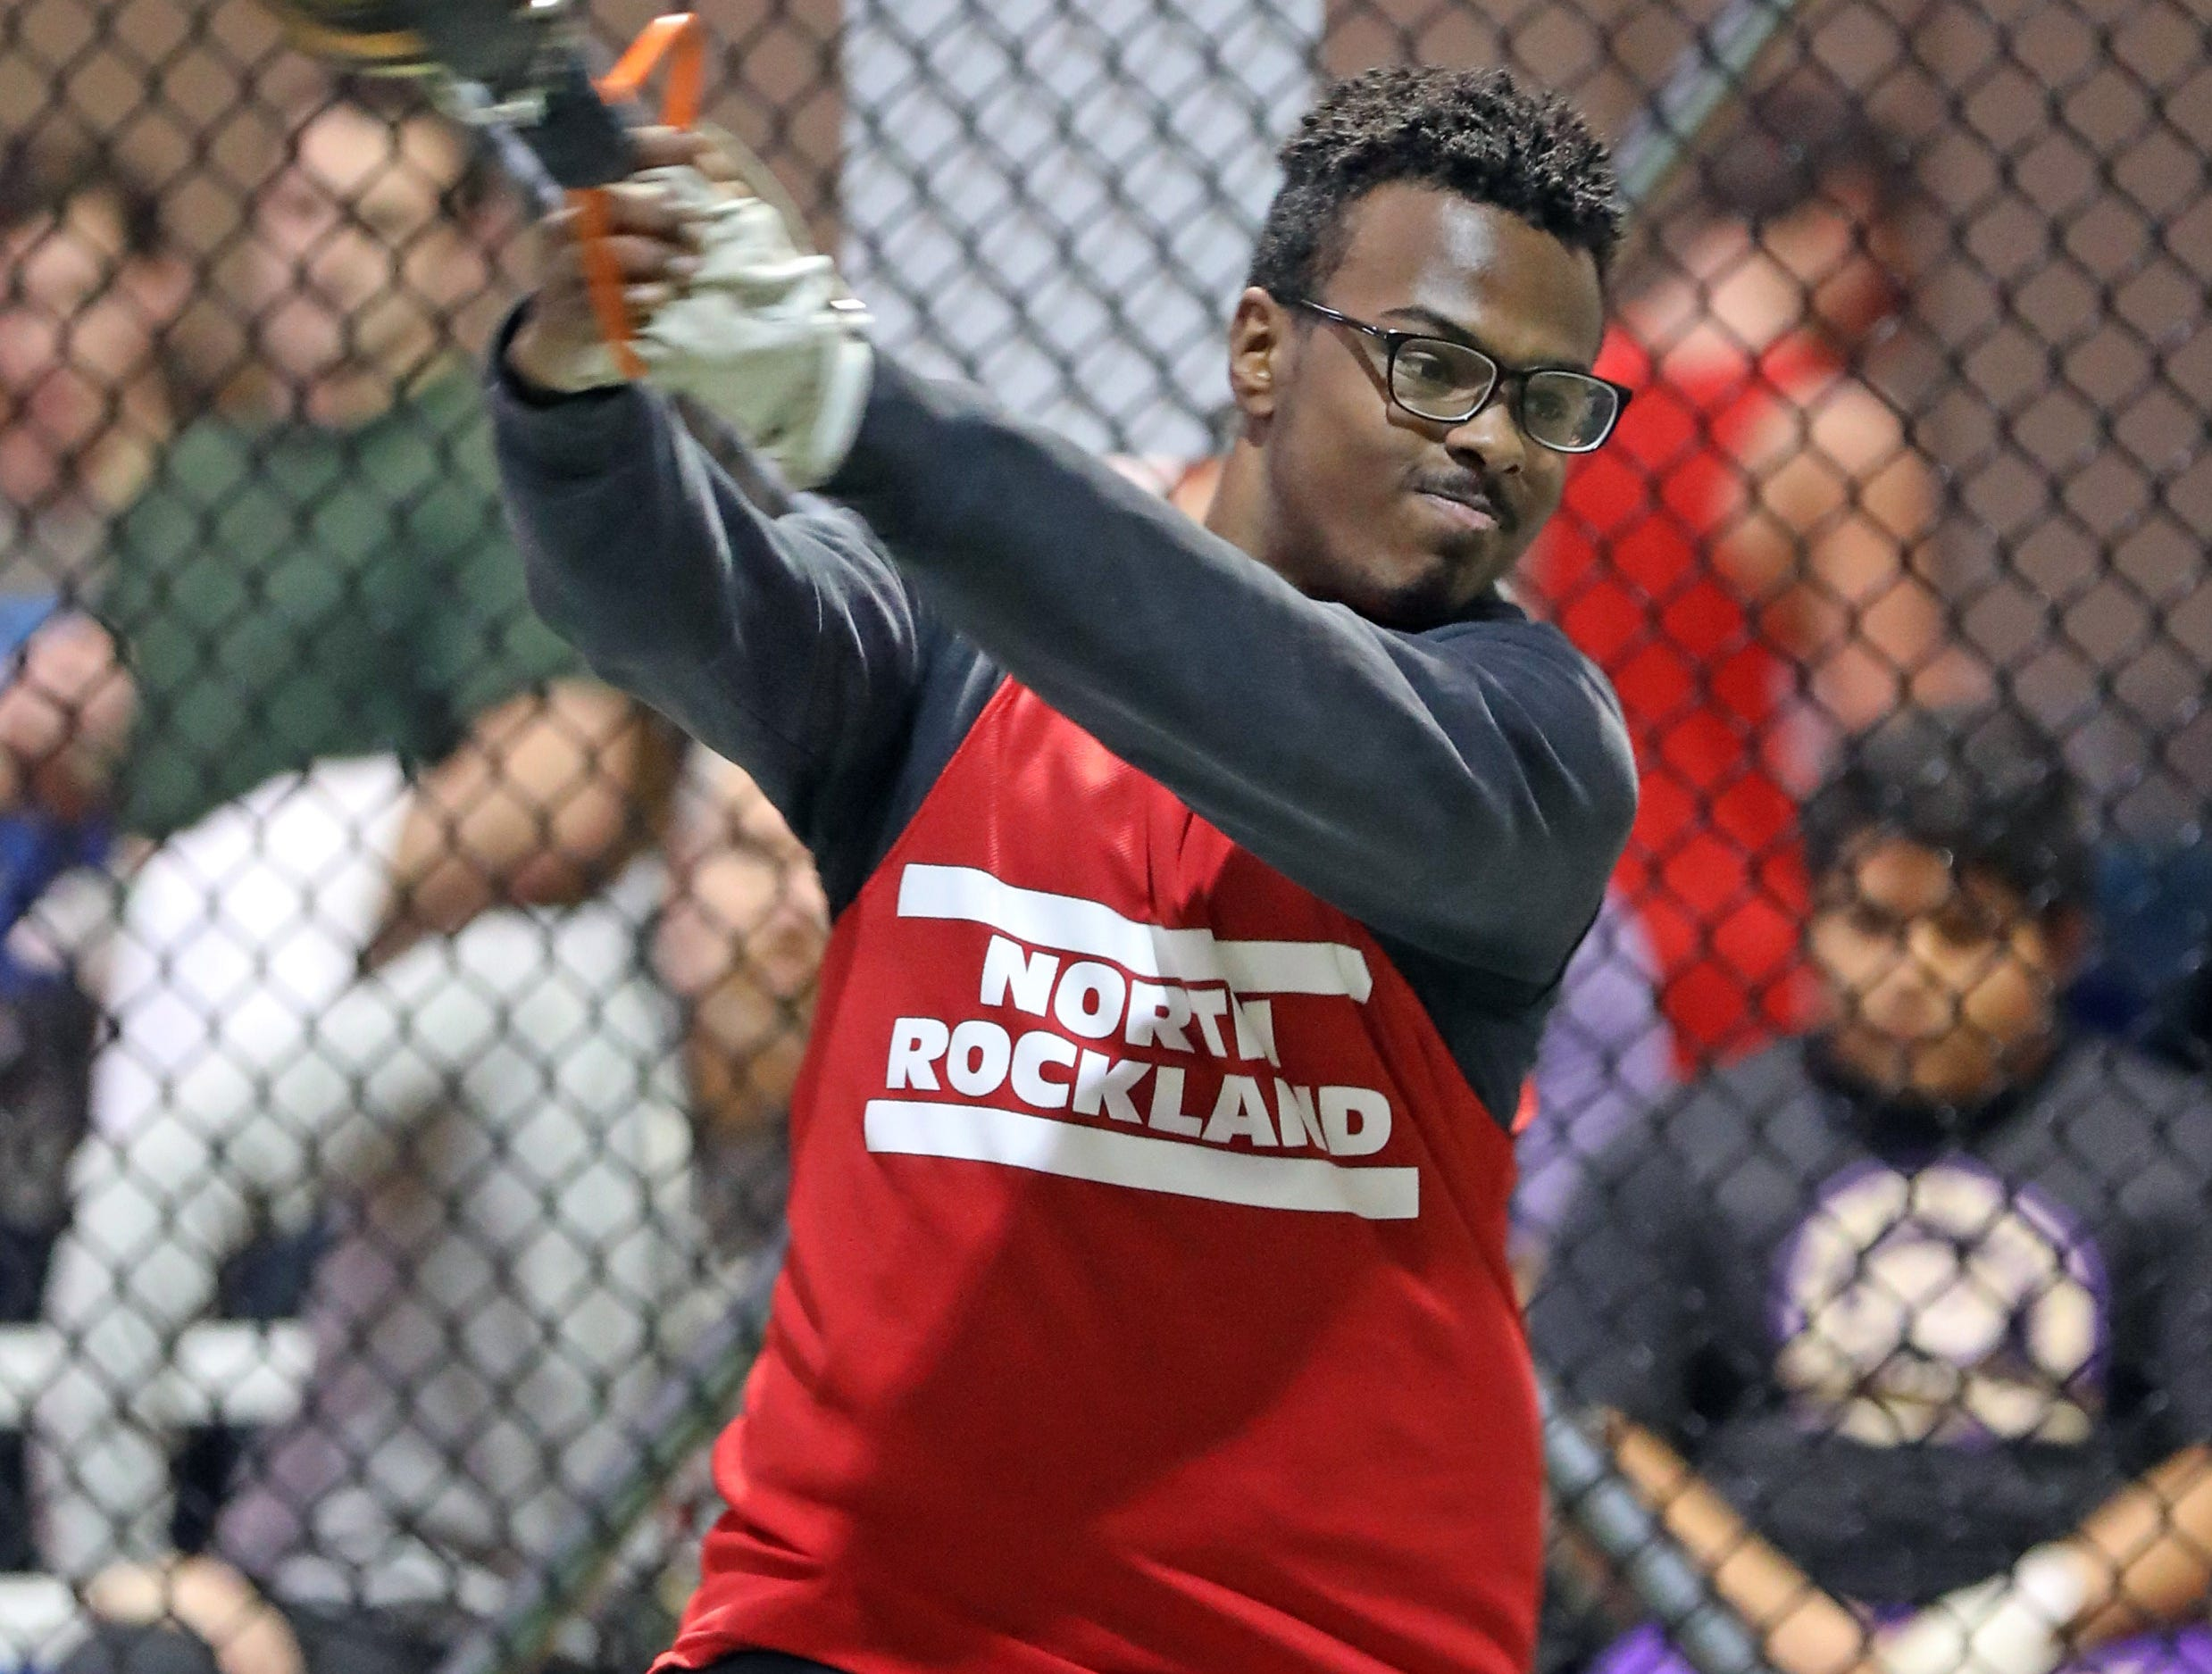 North Rockland's Francis Vargas competes in the boys weight throw during the Millrose Games Trials at the Armory in Manhattan Jan. 9, 2019.